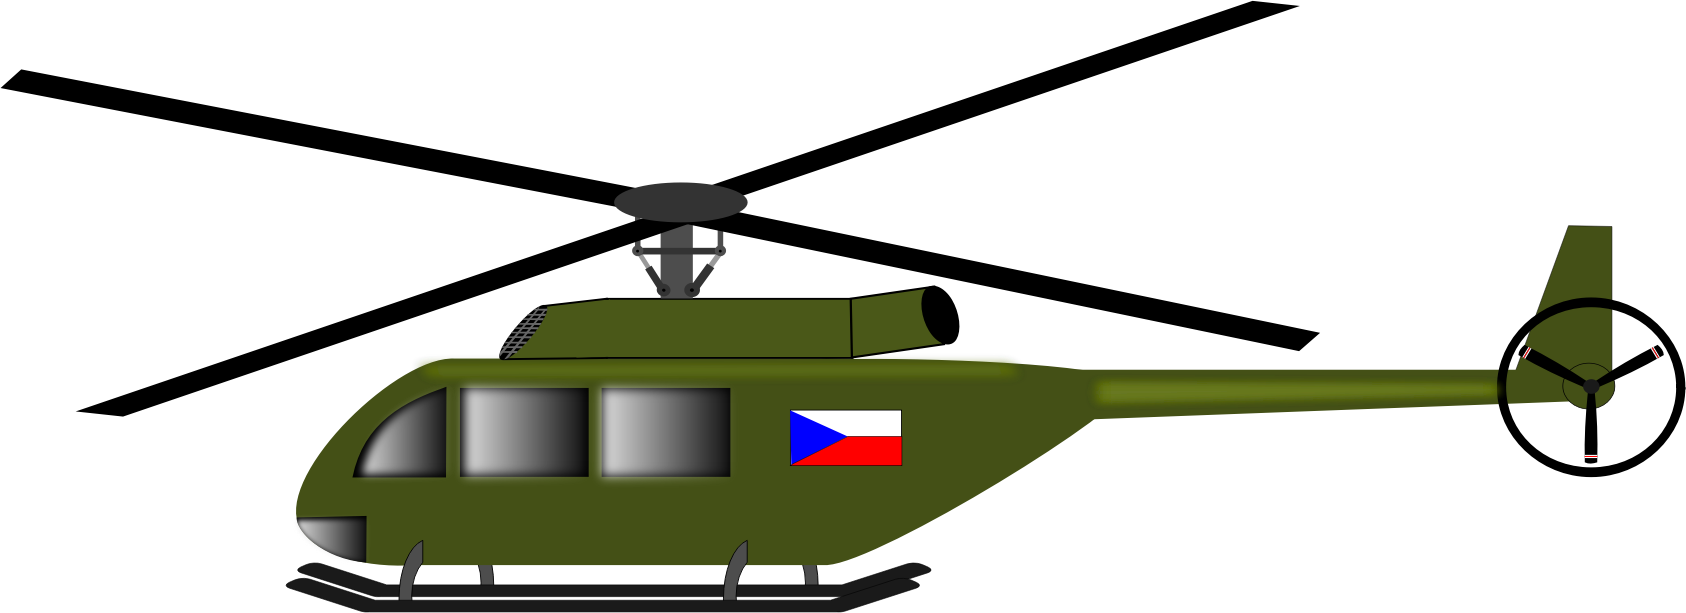 helicopter png clipart best